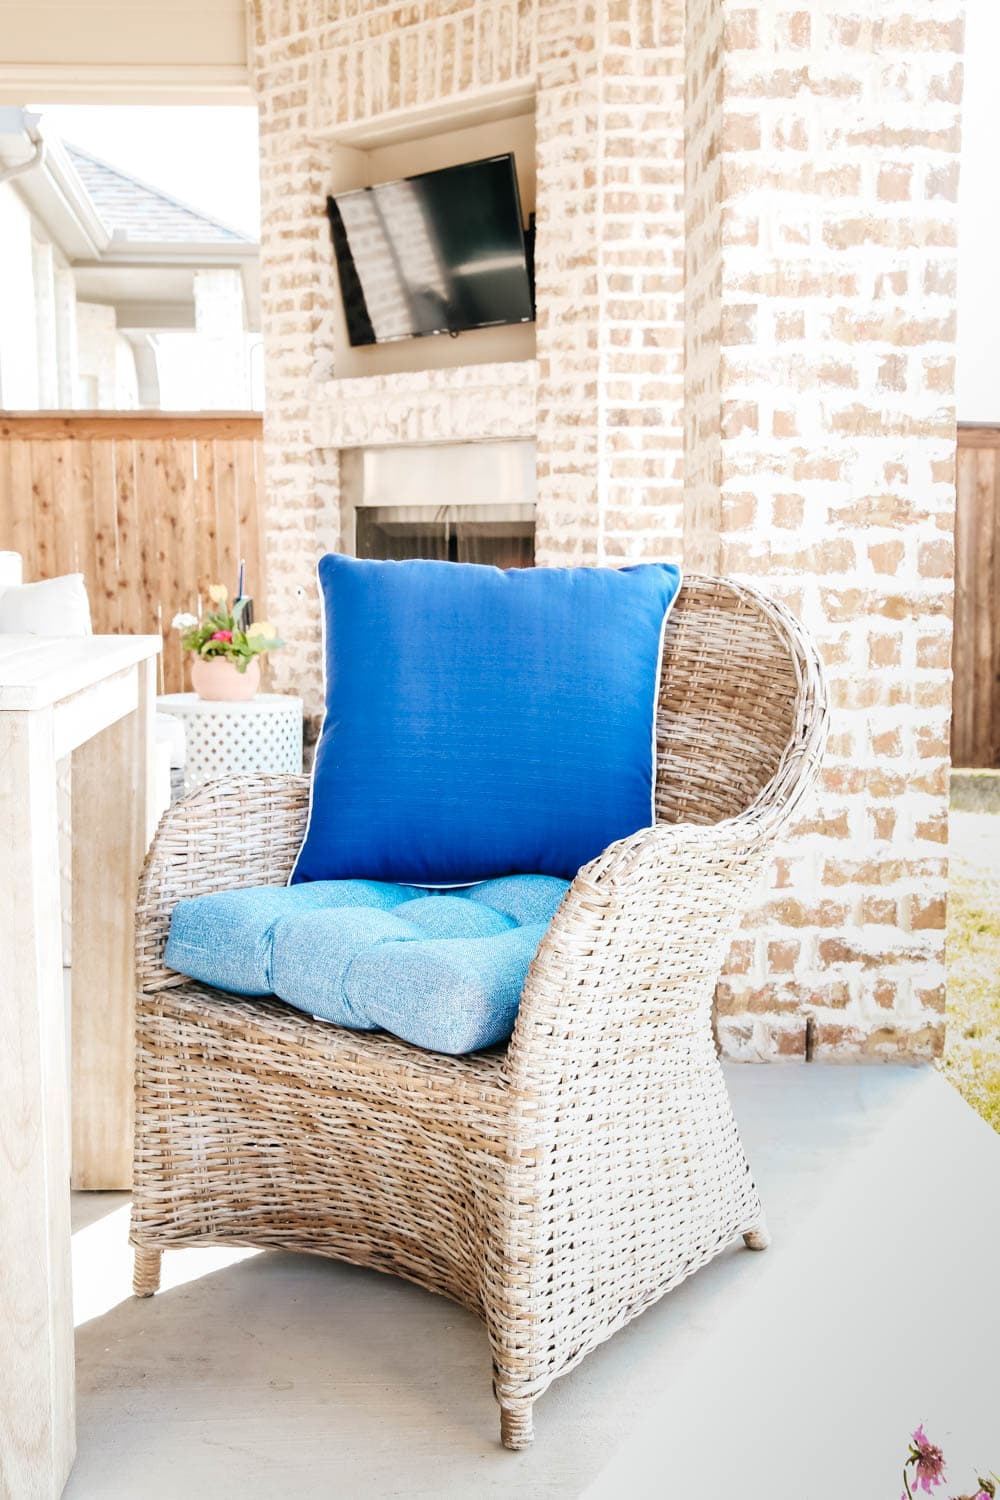 blue cushions, wicker chairs, brick fireplace, spring patio decor. #ABlissfulNest #patio #outdoor #backyard